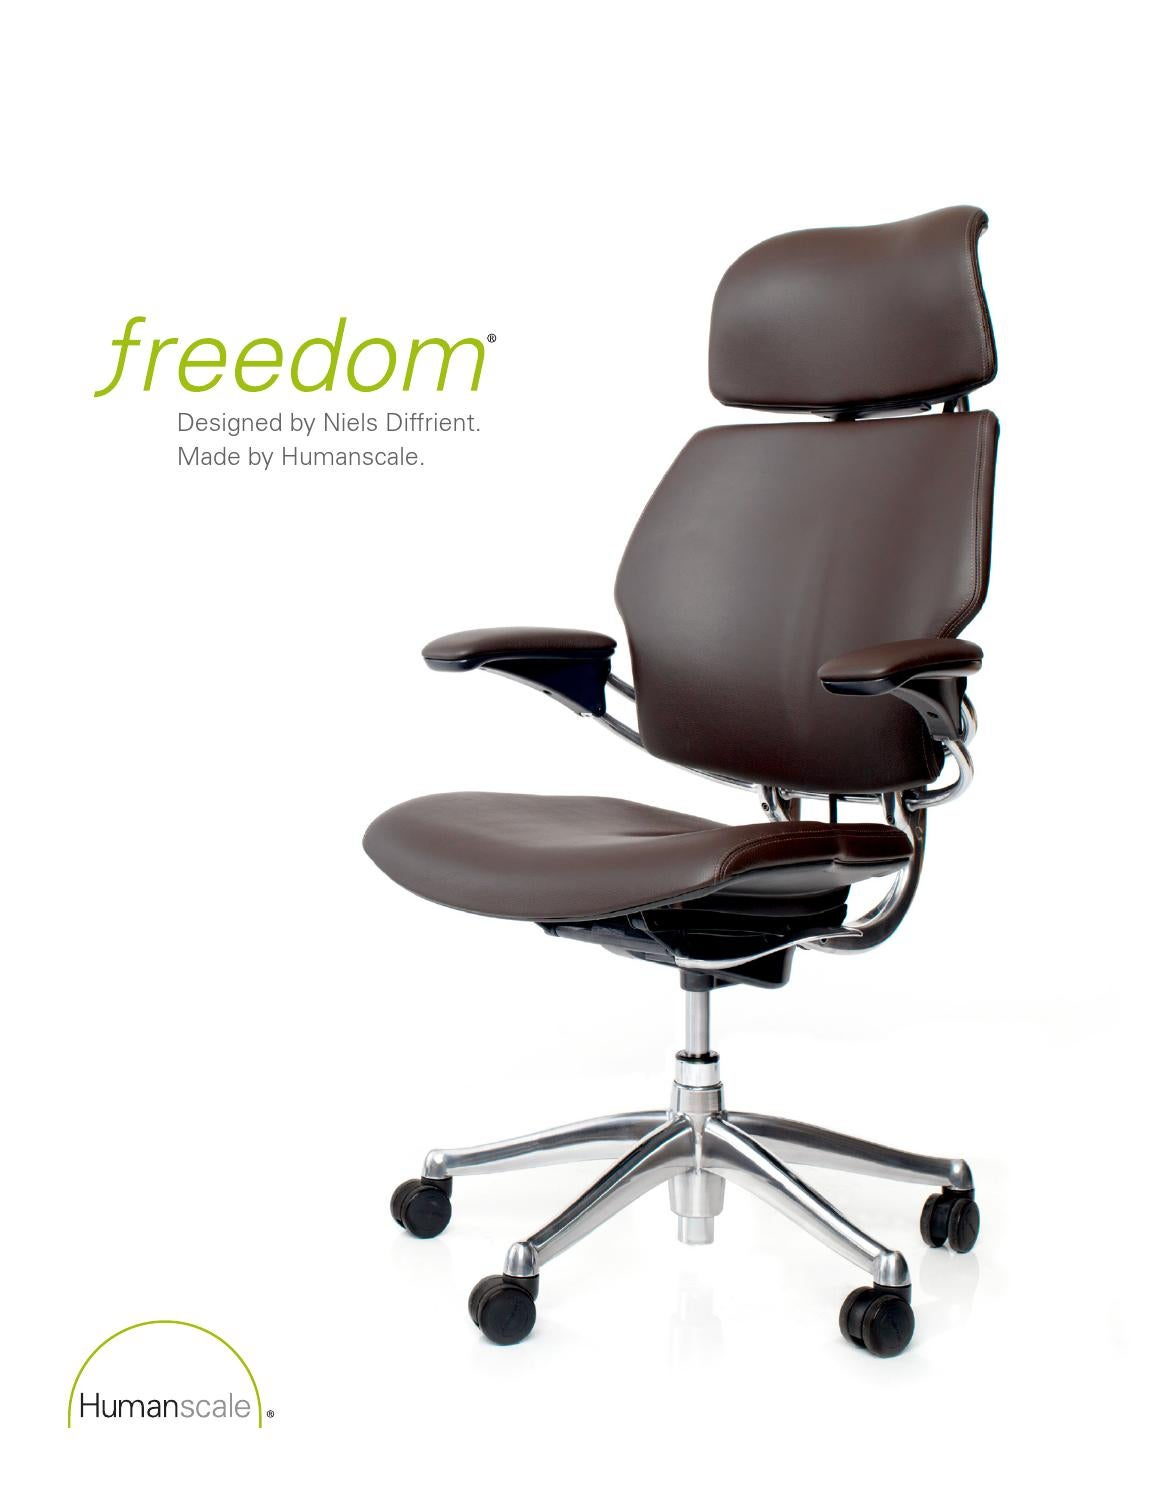 design google freedom with like humanscale ideas feeling search boss for scale intended human chair